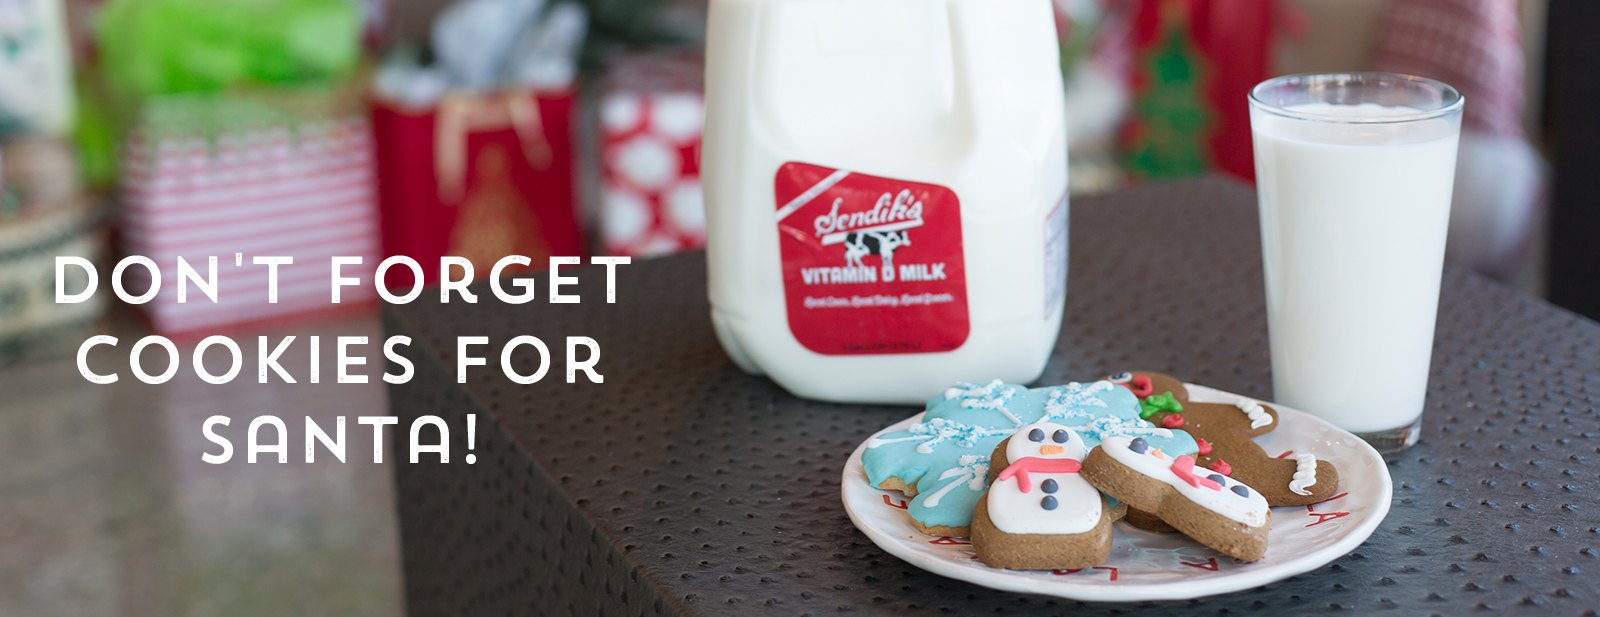 Don't forget milk and cookies for santa!